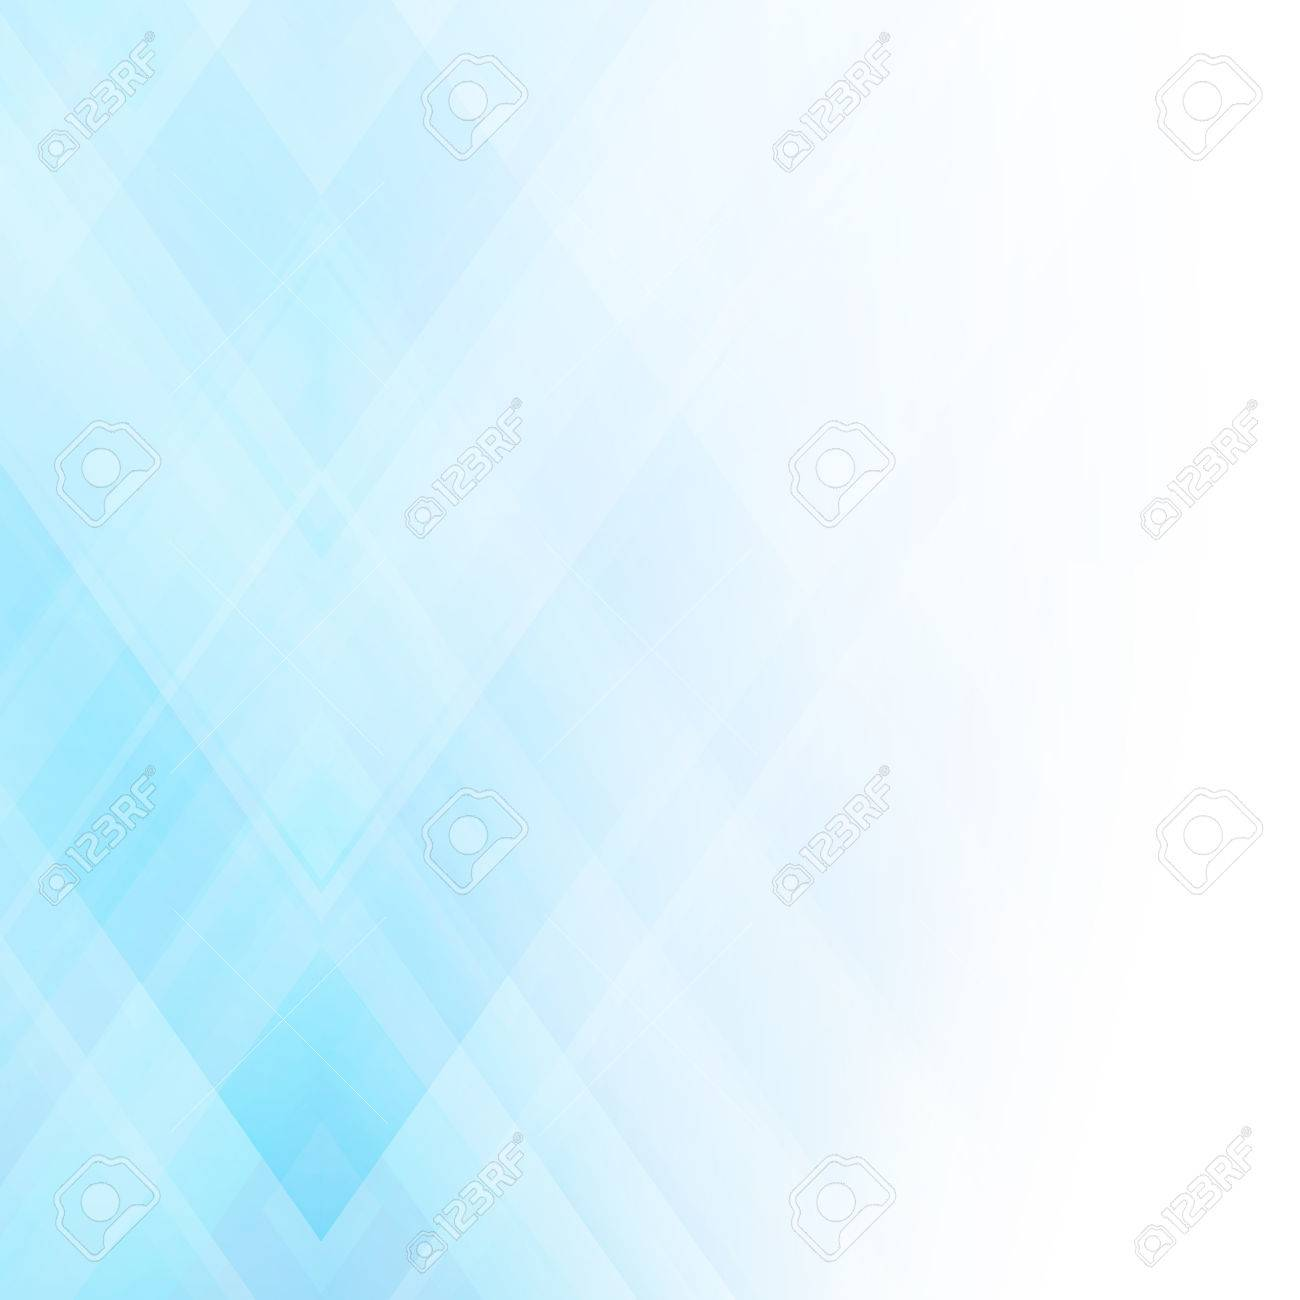 Abstract Background. A Template for Brochures, Covers etc. - 54344237